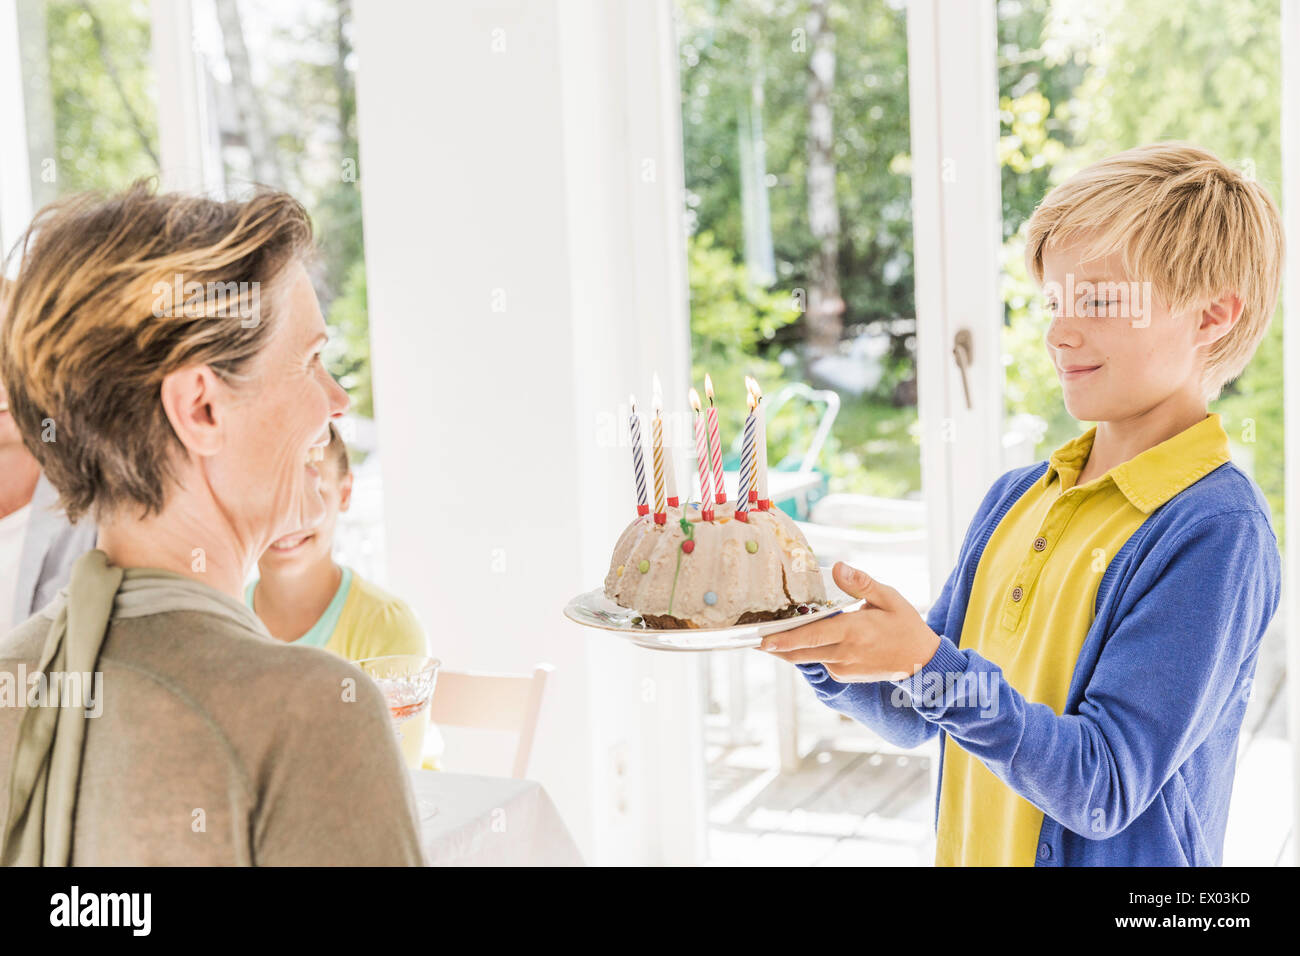 Boy handing birthday cake to grandmother in dining room - Stock Image